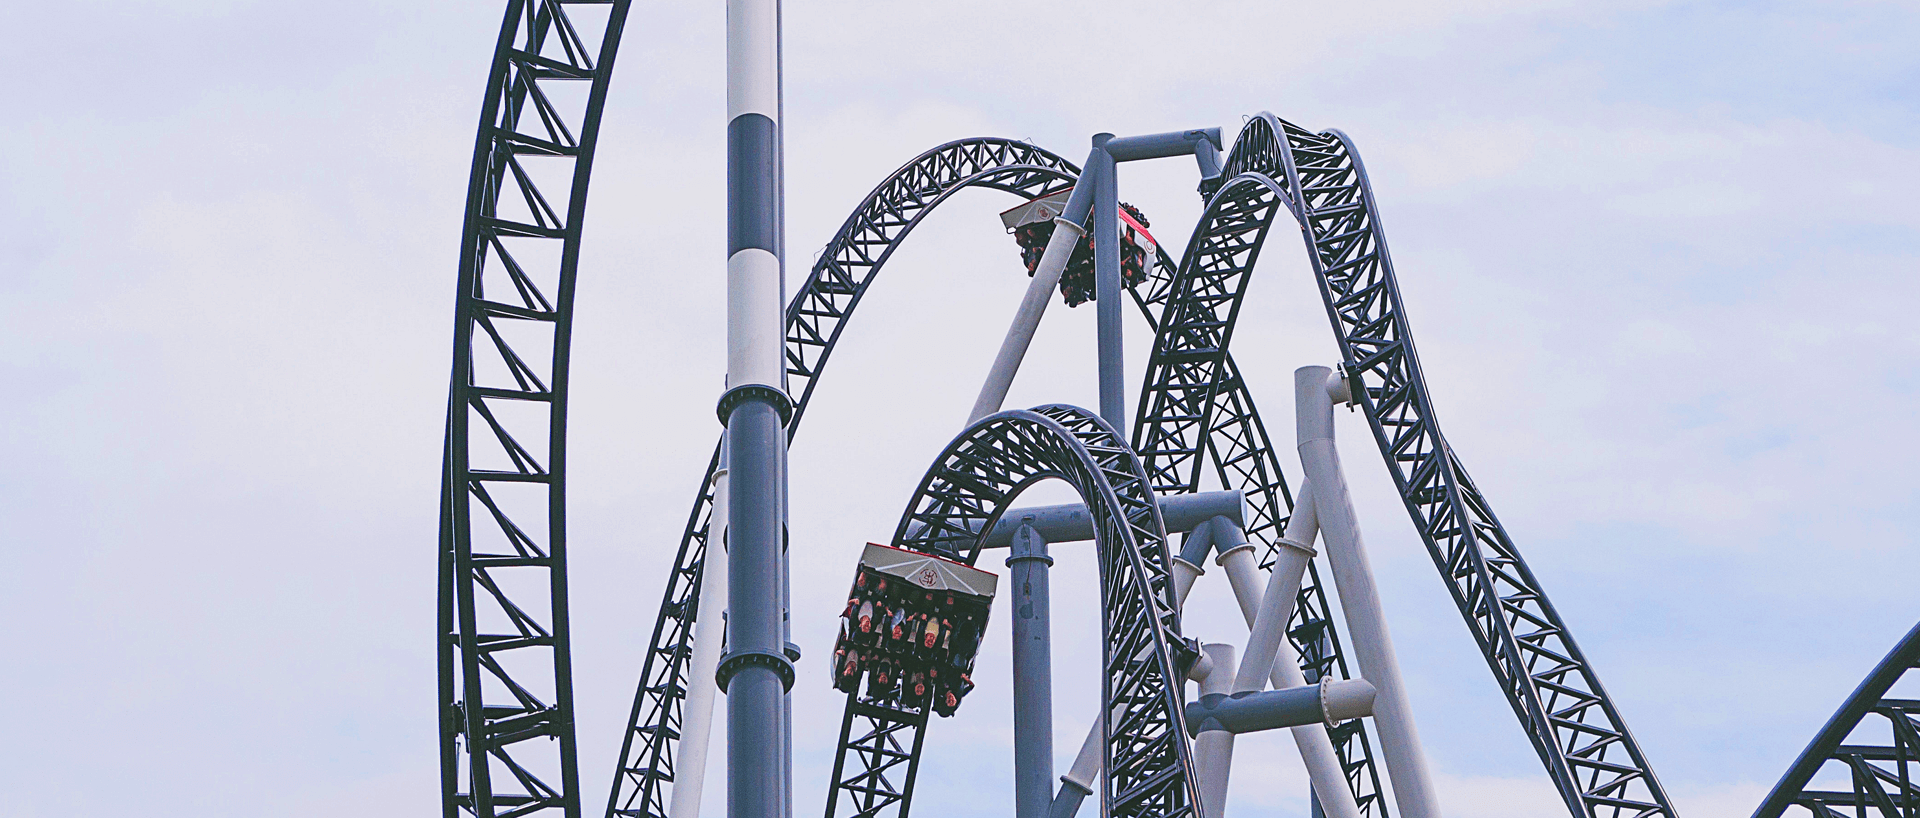 Close-up of the loops of a rollercoaster.